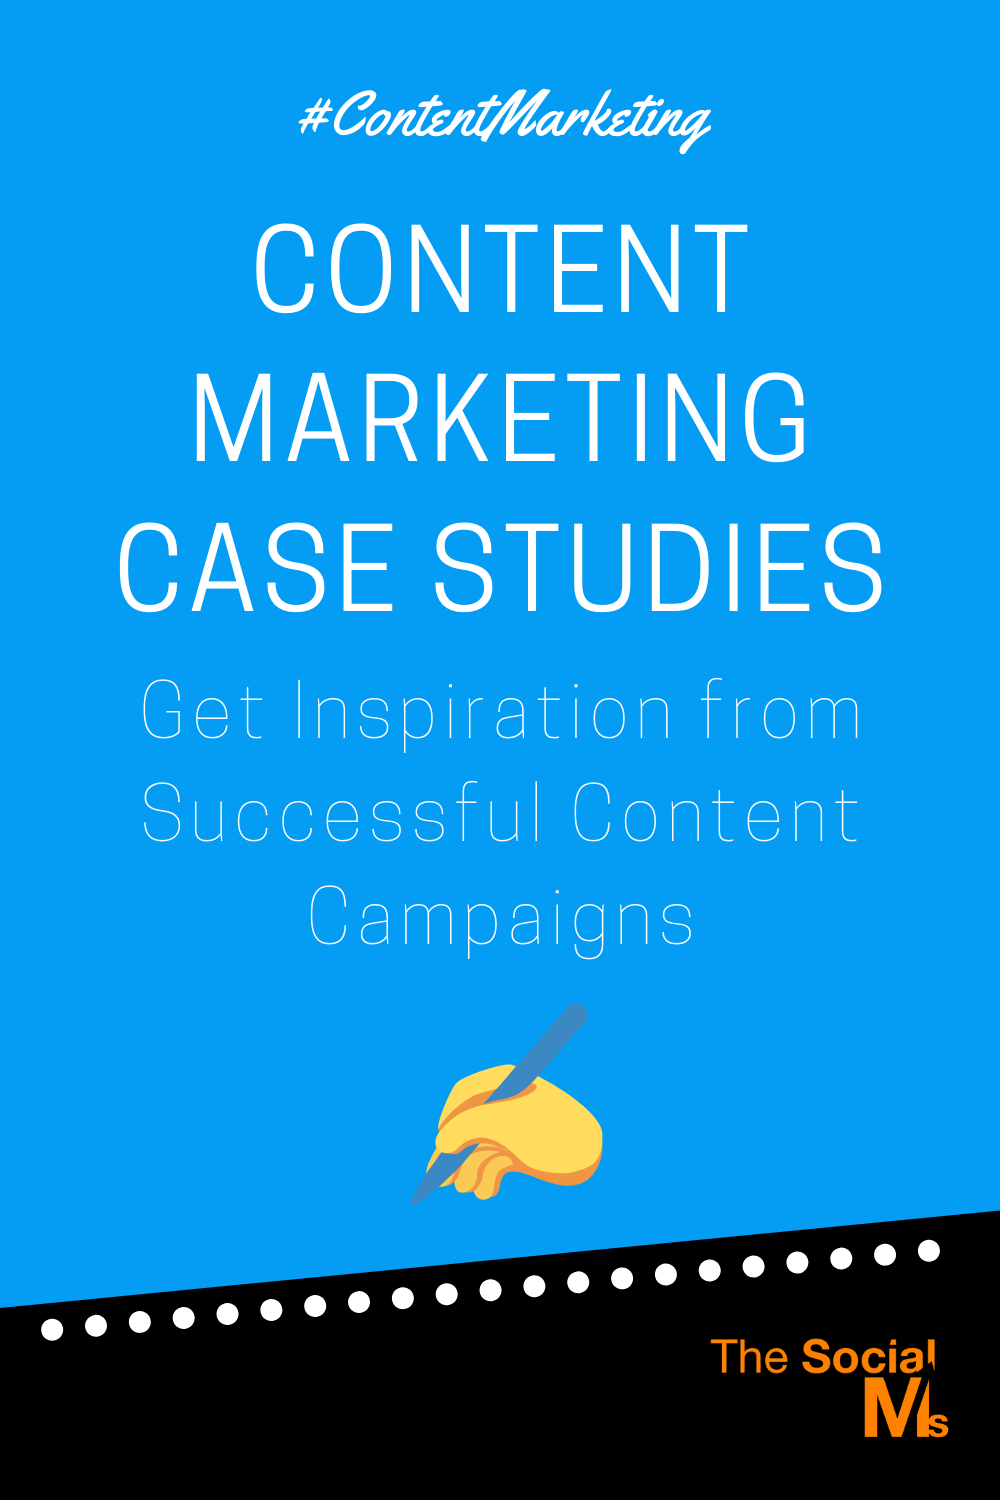 There is a lot of misconception and lack of creativity running around in content marketing. Taking a closer look at some inspiring content marketing case studies can help to understand the concept. Here are 10 content marketing case studies to show you a variety of goals, strategies, and achievements you may want to consider for your content marketing strategy. #contentmarketing #marketingexample #marketingcasestudy #contentmarketingstrategy #digitalmarketingtips #contentmarketingtips